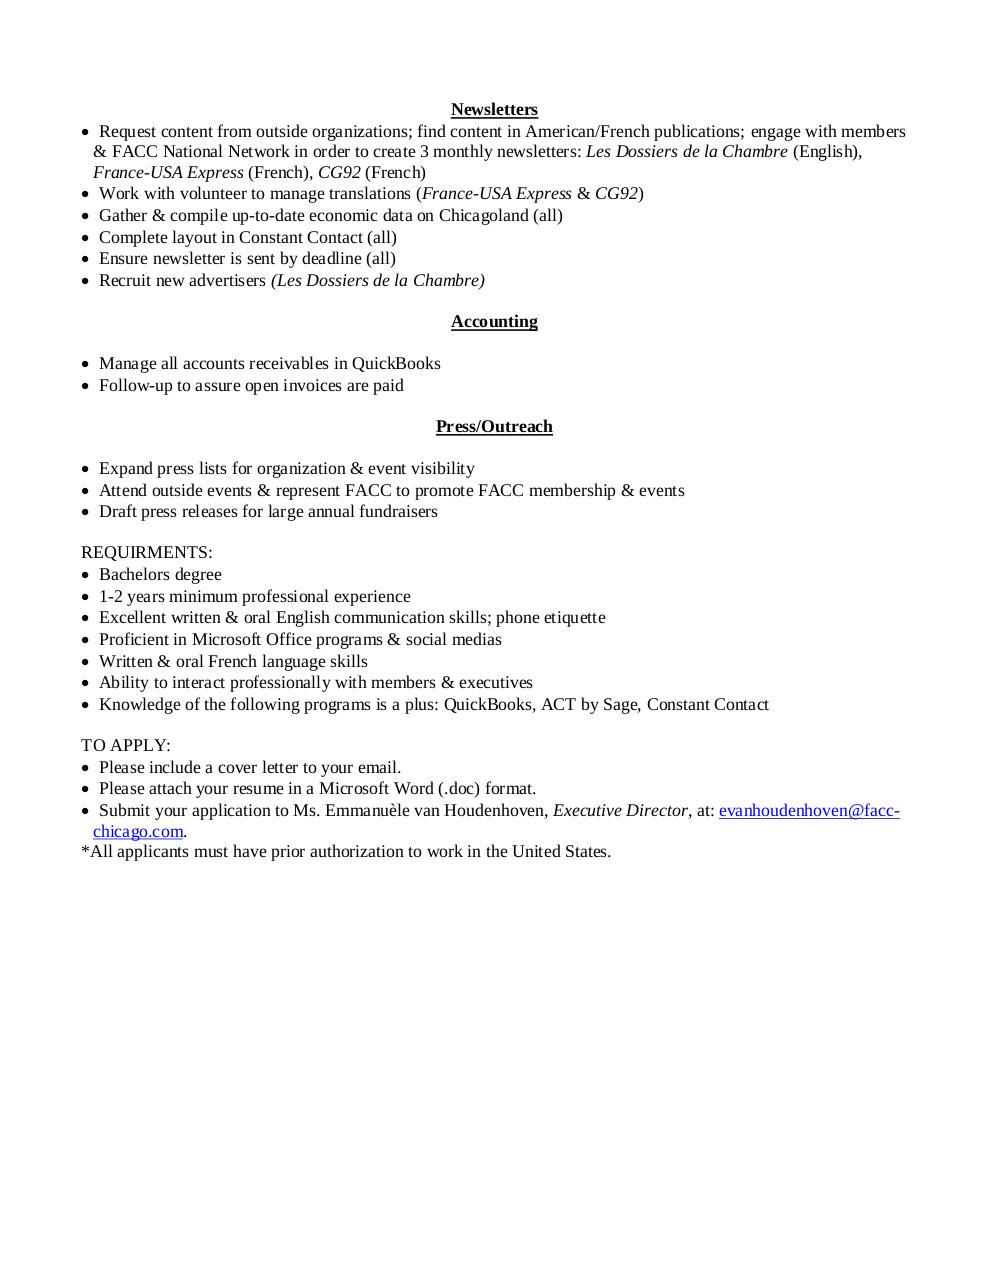 Resume Format For One Year Experience In Networking | Best ...